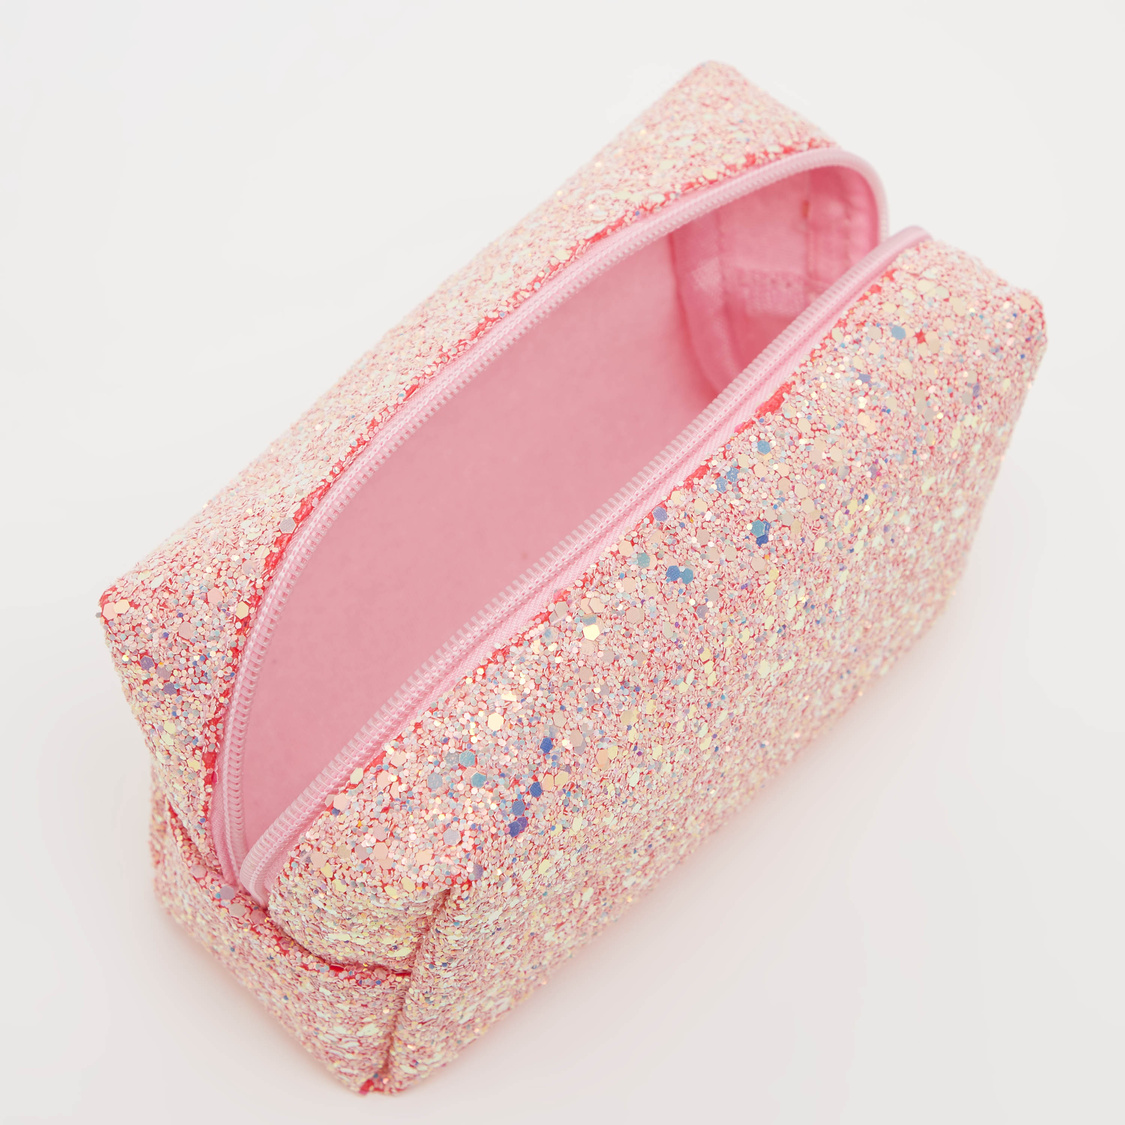 Embellished Pouch with Zip Closure